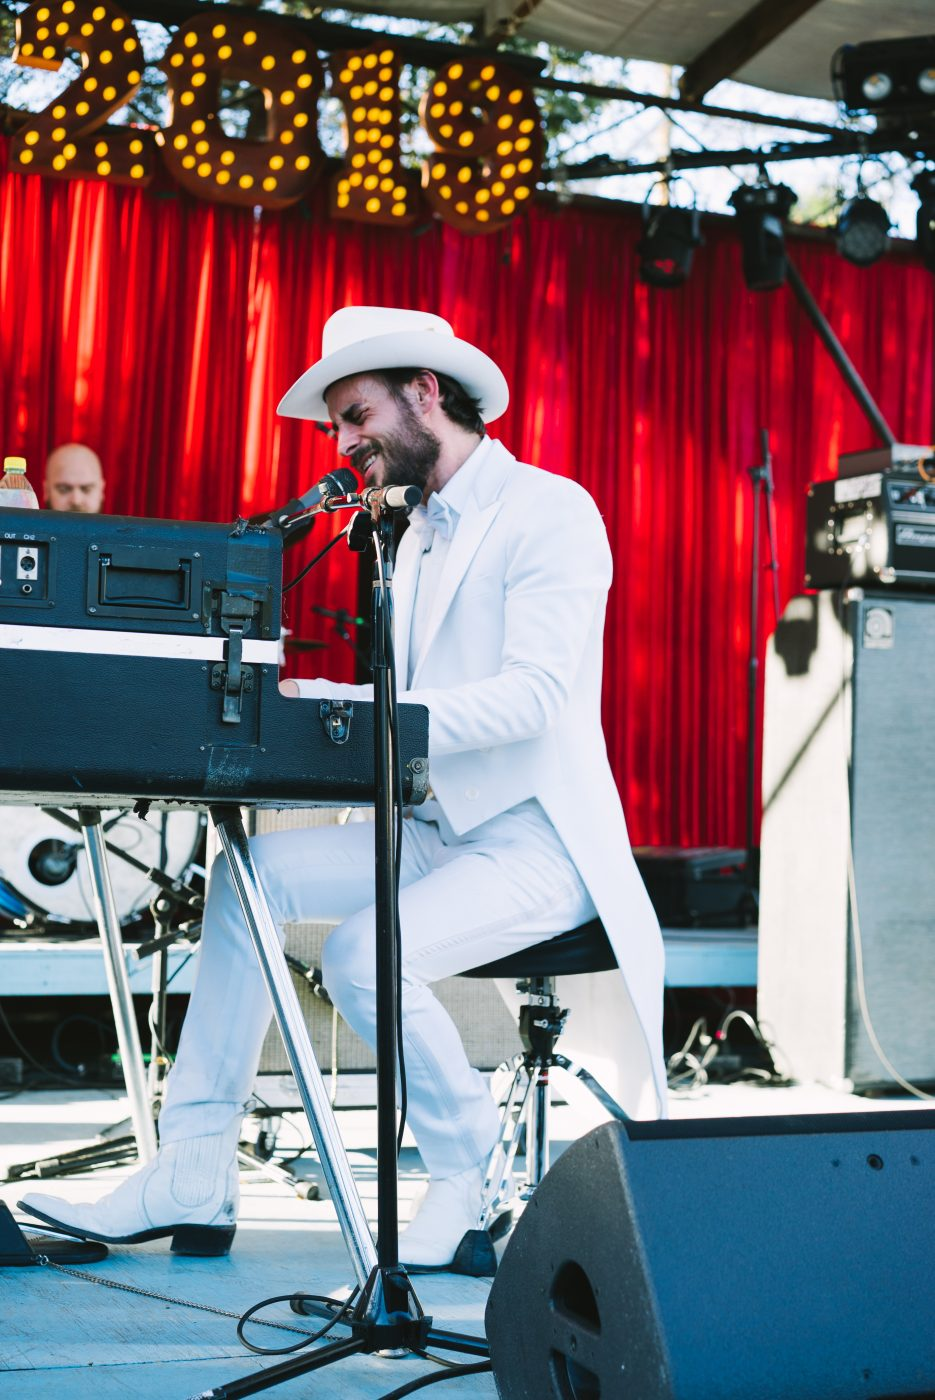 Musician performing on staging wearing a white suite and white cowboy hat